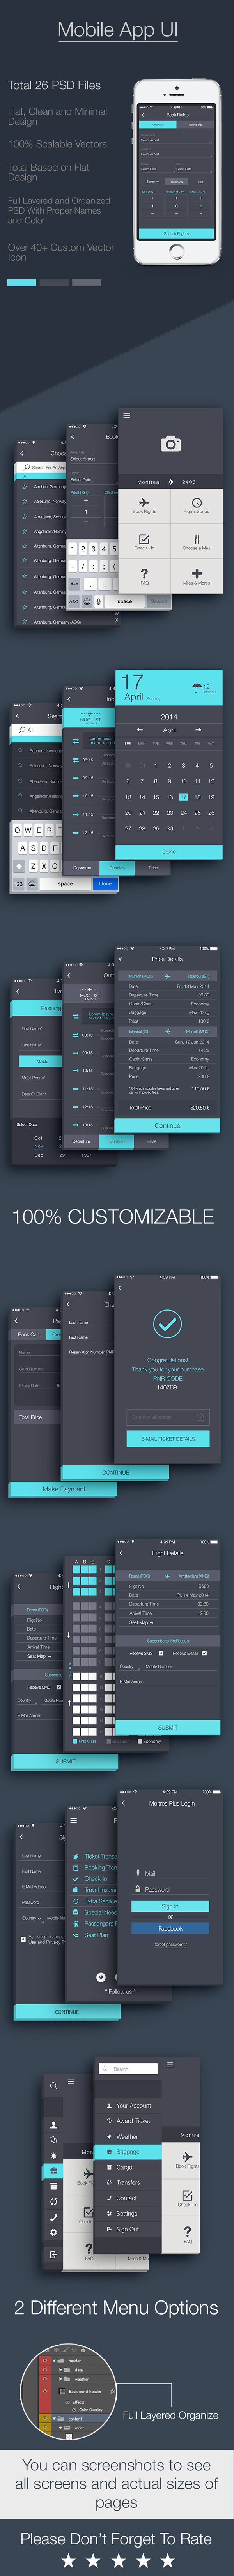 Airlines flat mobile app UI for iphone, Main features;26 PSD FilesFully Layered and Organized PSD With Proper Names and ColorEasy to edit and resize pagesClean flat design.Scalable Vectors40 plus Custom VectorsDownload here; http://graphicriver.…